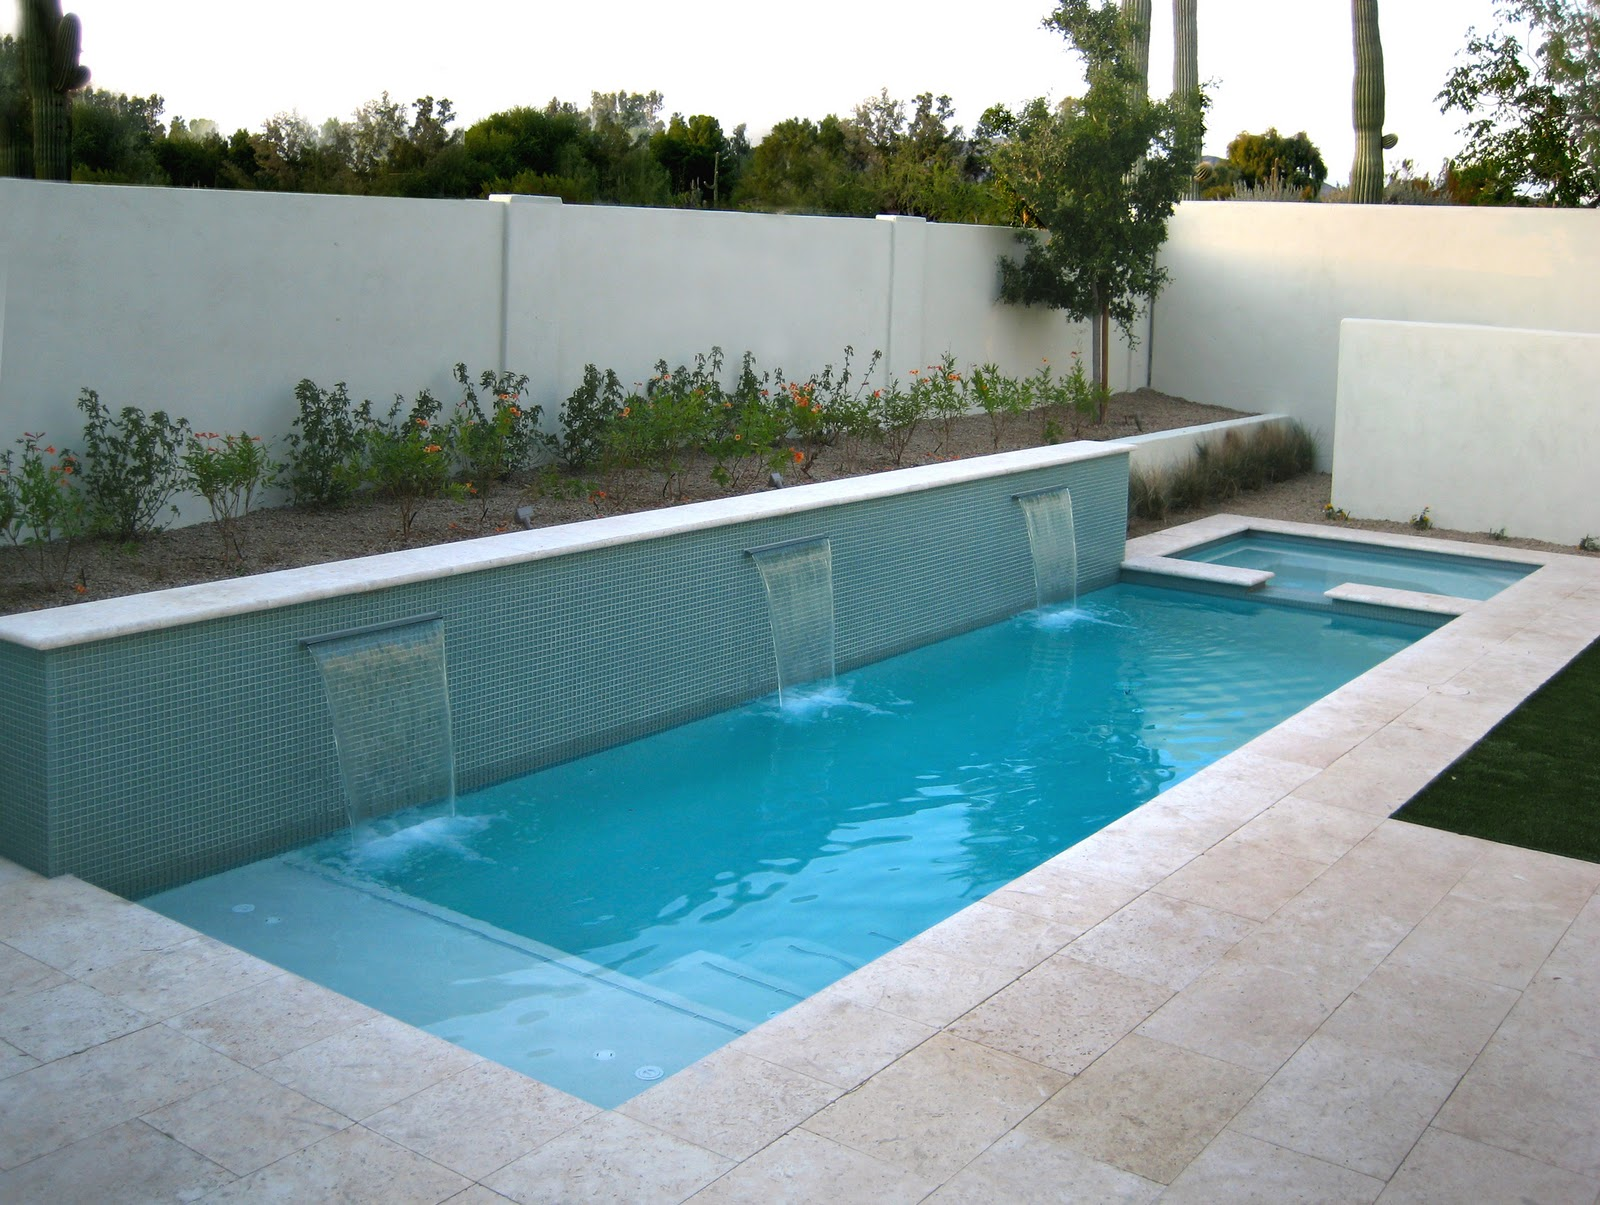 Backyard Pool Design Design Impressive Inspiration